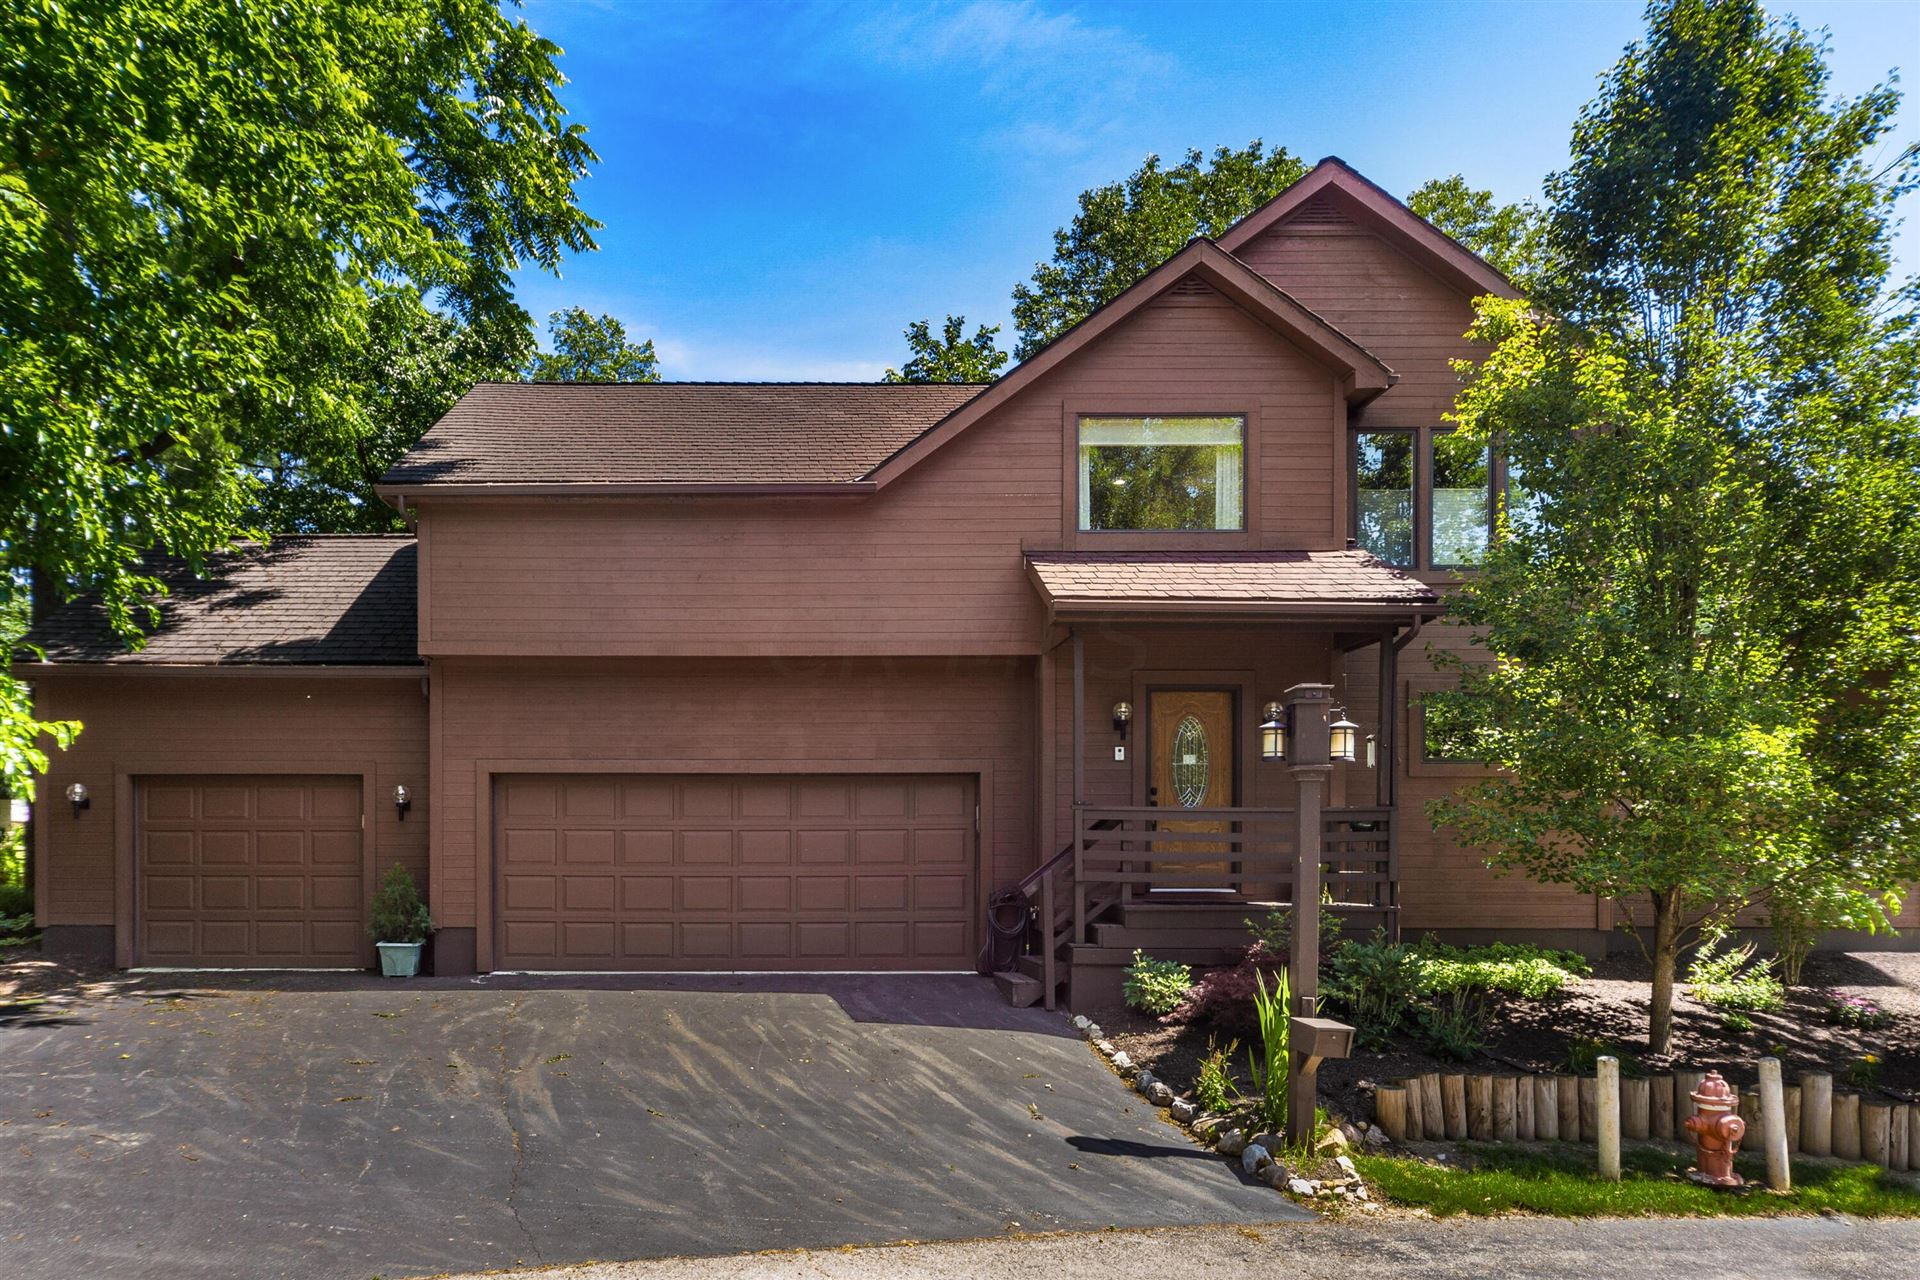 Photo of 482 Beachside Drive, Westerville, OH 43081 (MLS # 221022033)